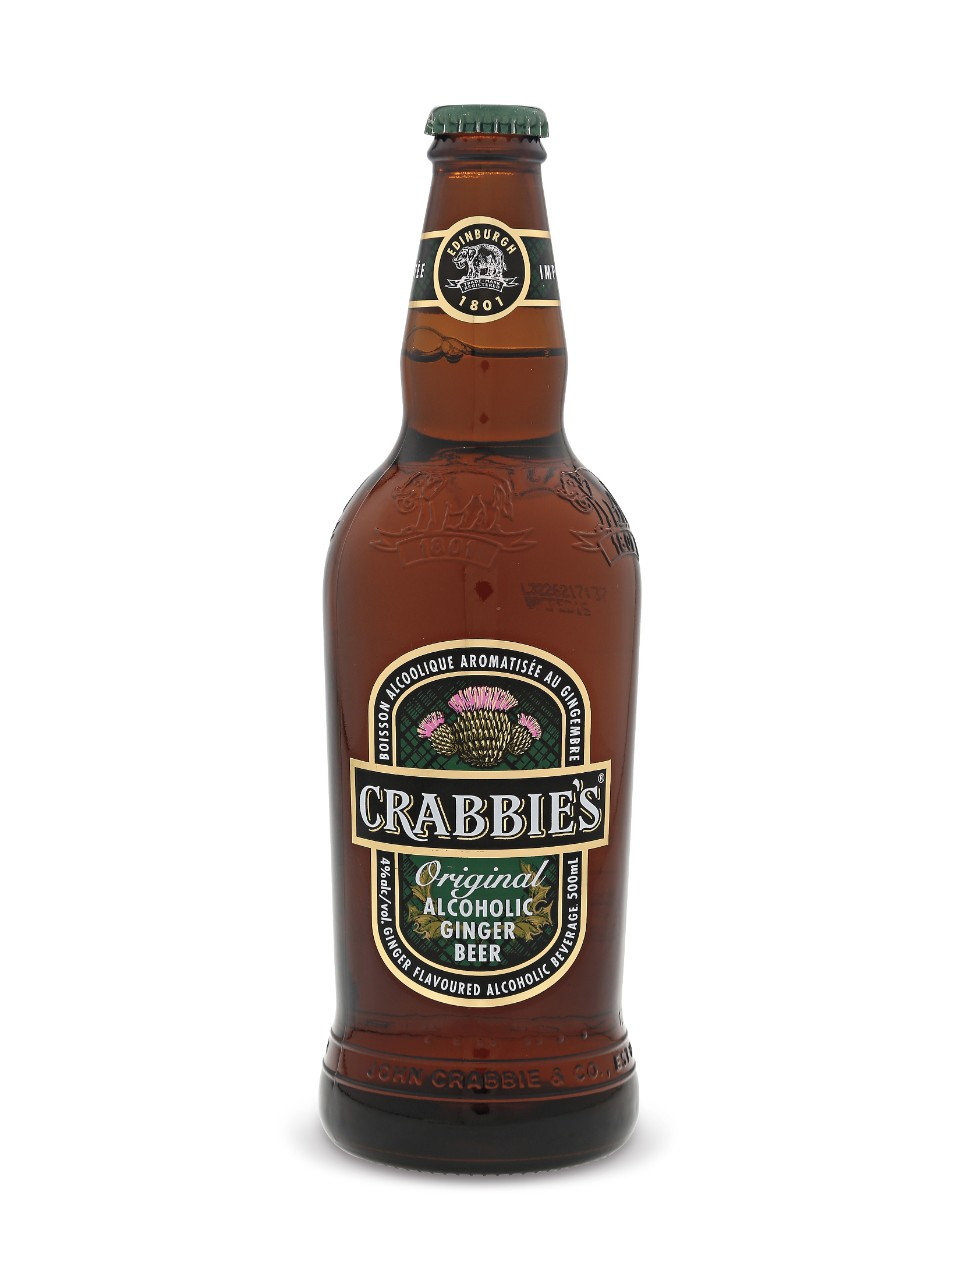 Crabbies Original Alcoholic Ginger Beer from LCBO